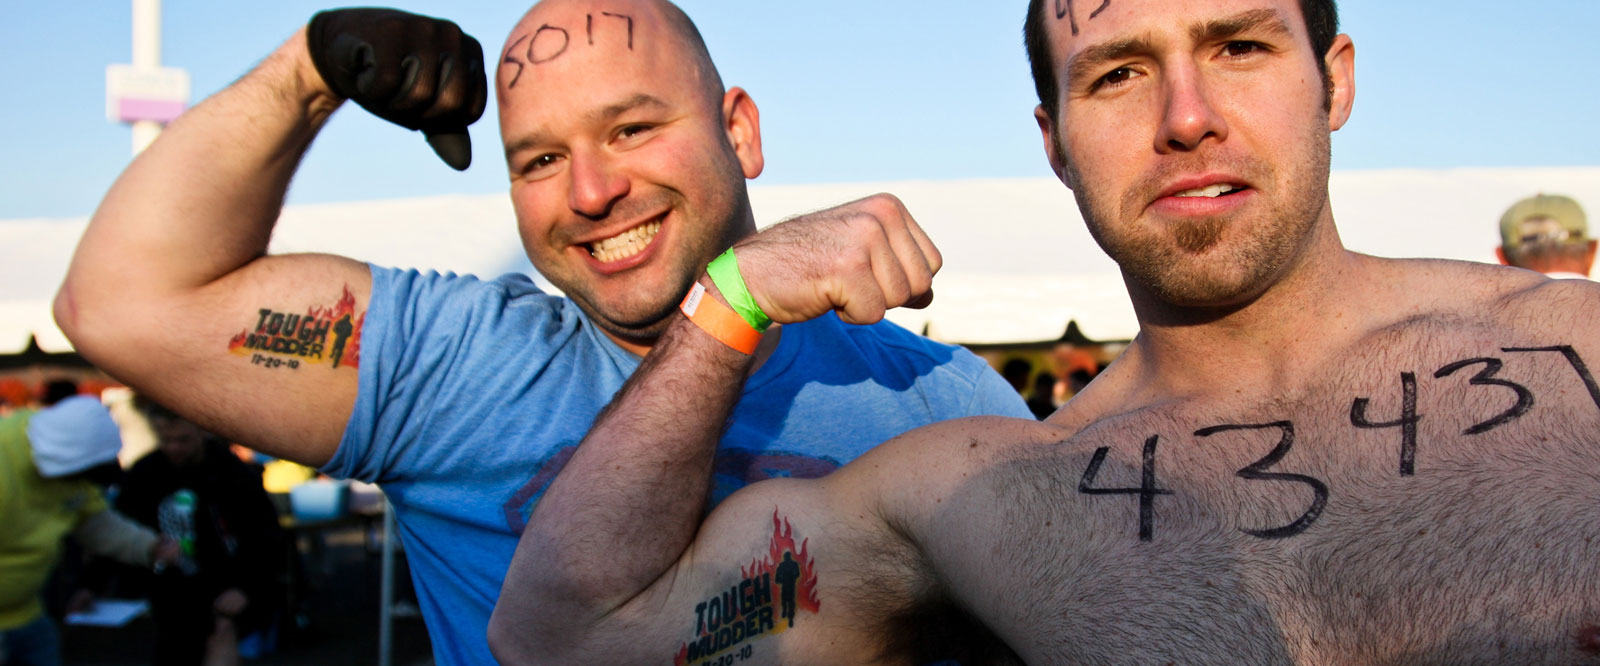 Two built dudes with Tough Mudder tattoos - brand by Condensed